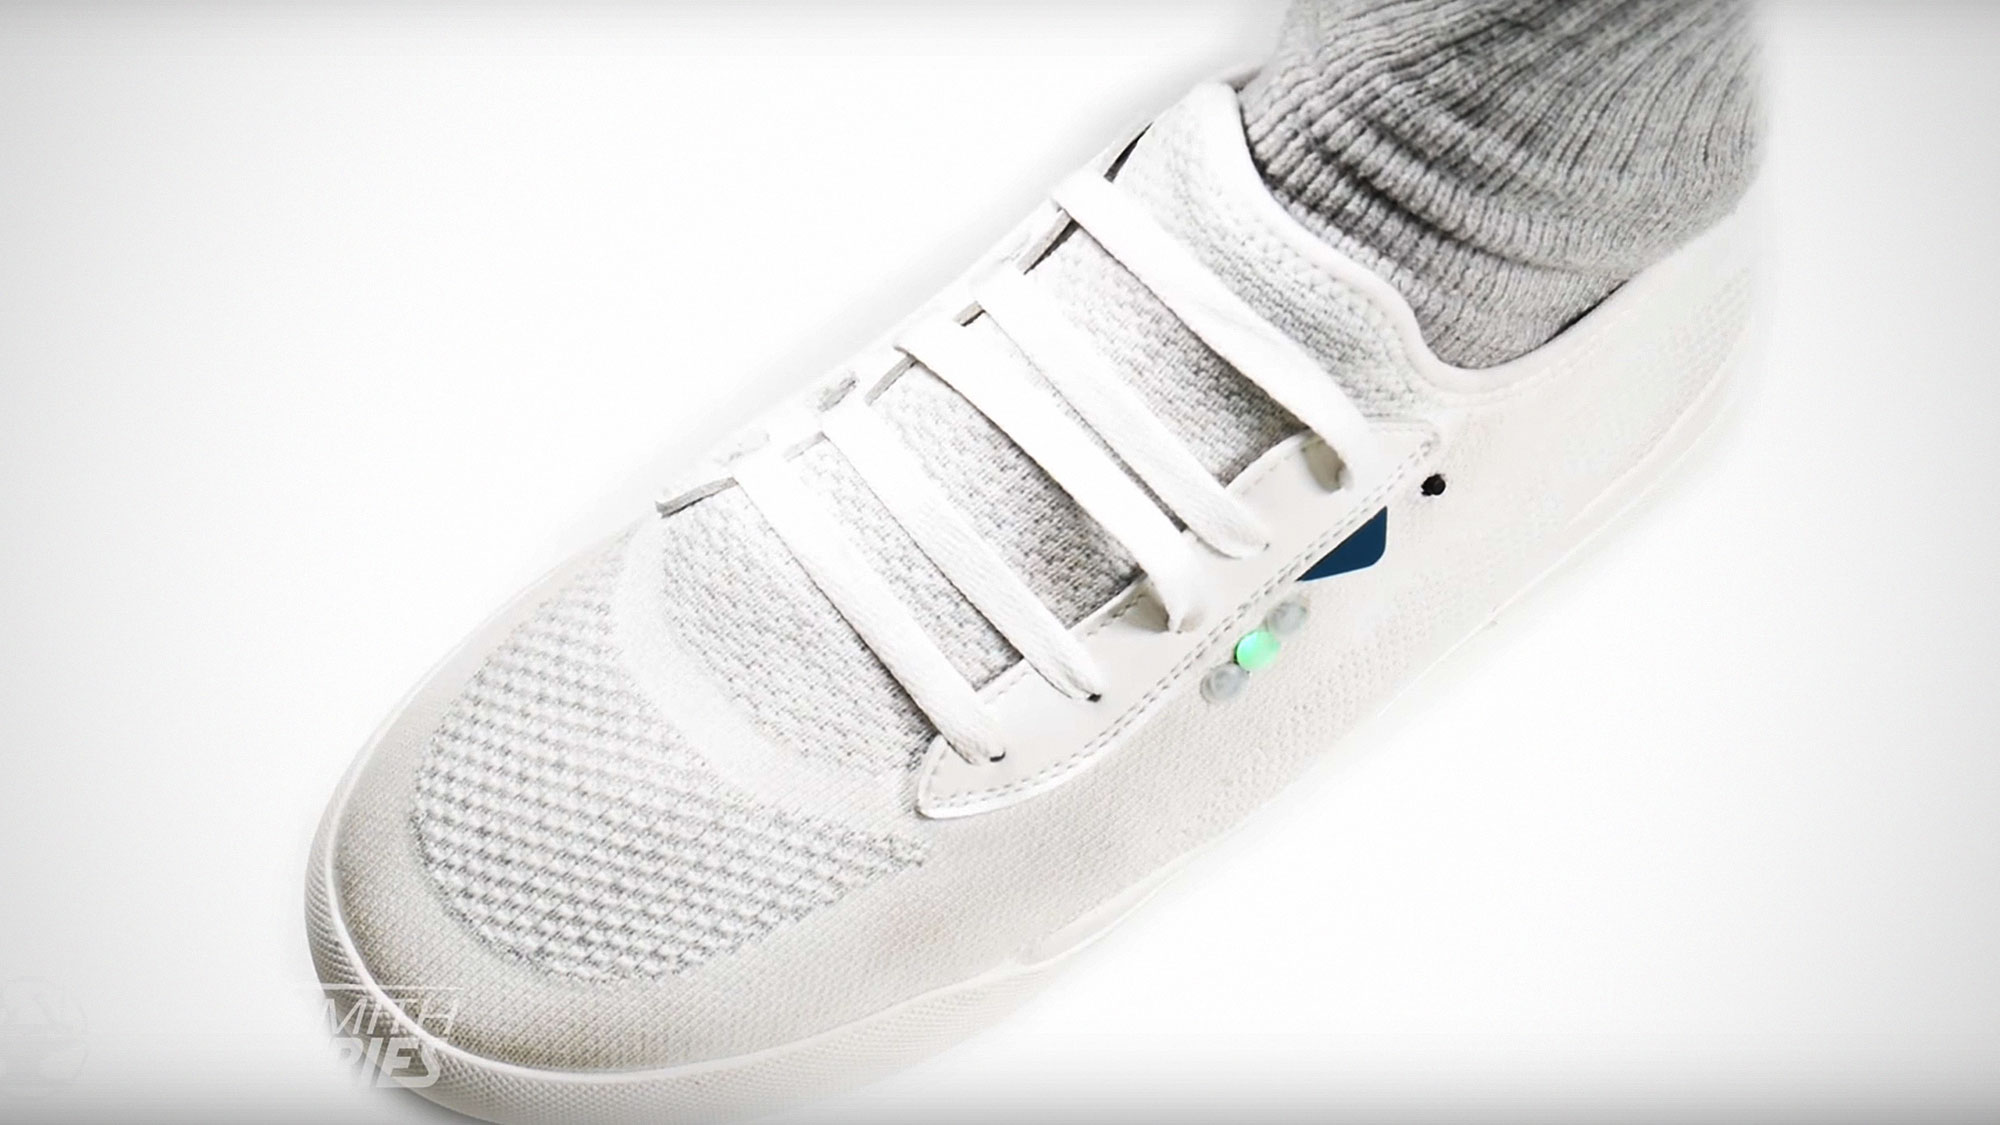 Self-lacing Shoes by The Hacksmith